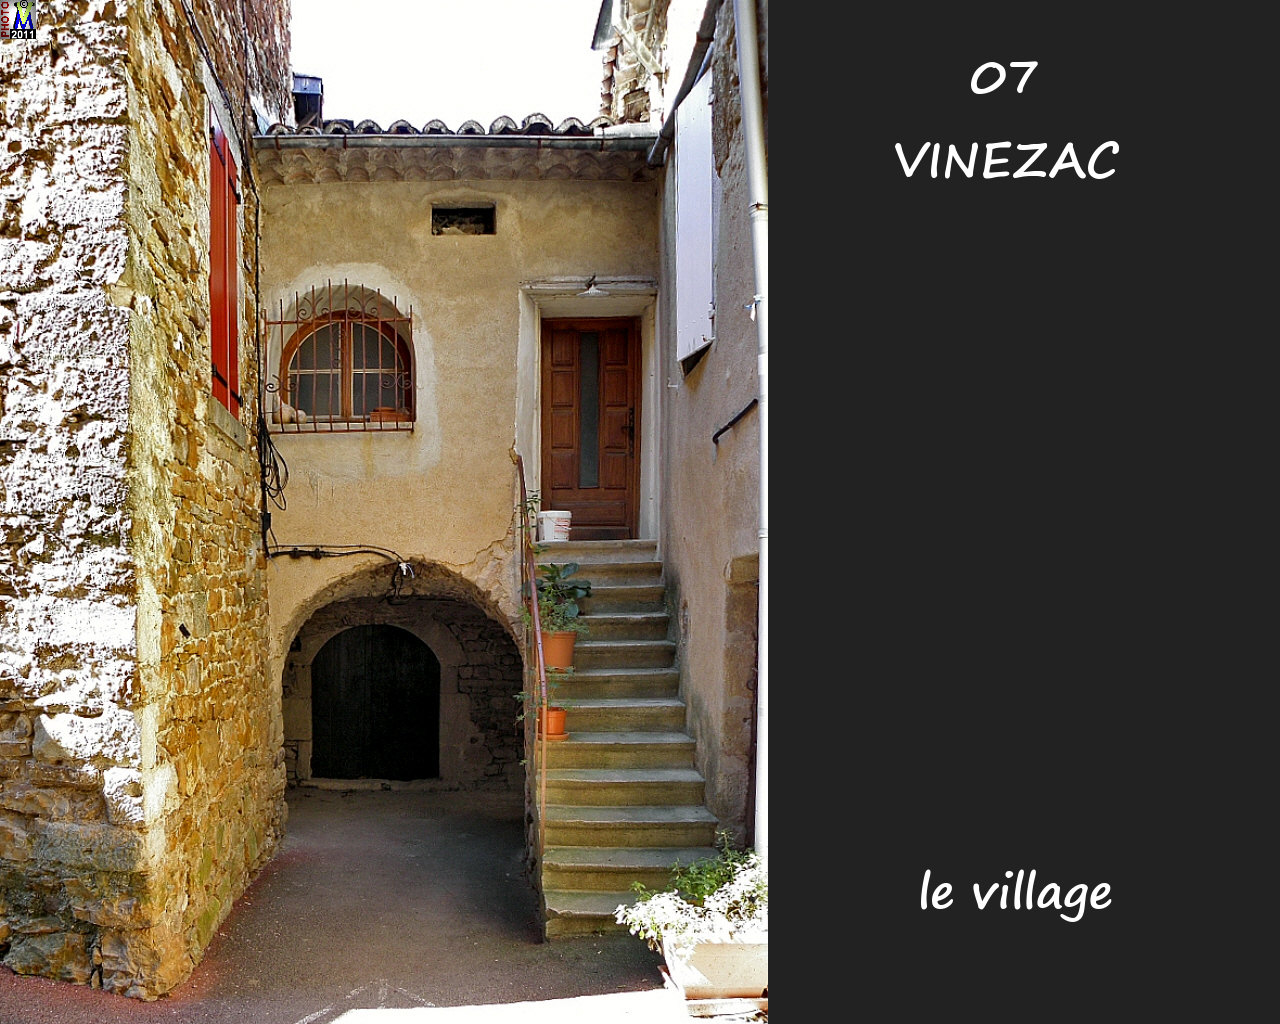 07VINEZAC_village_154.jpg